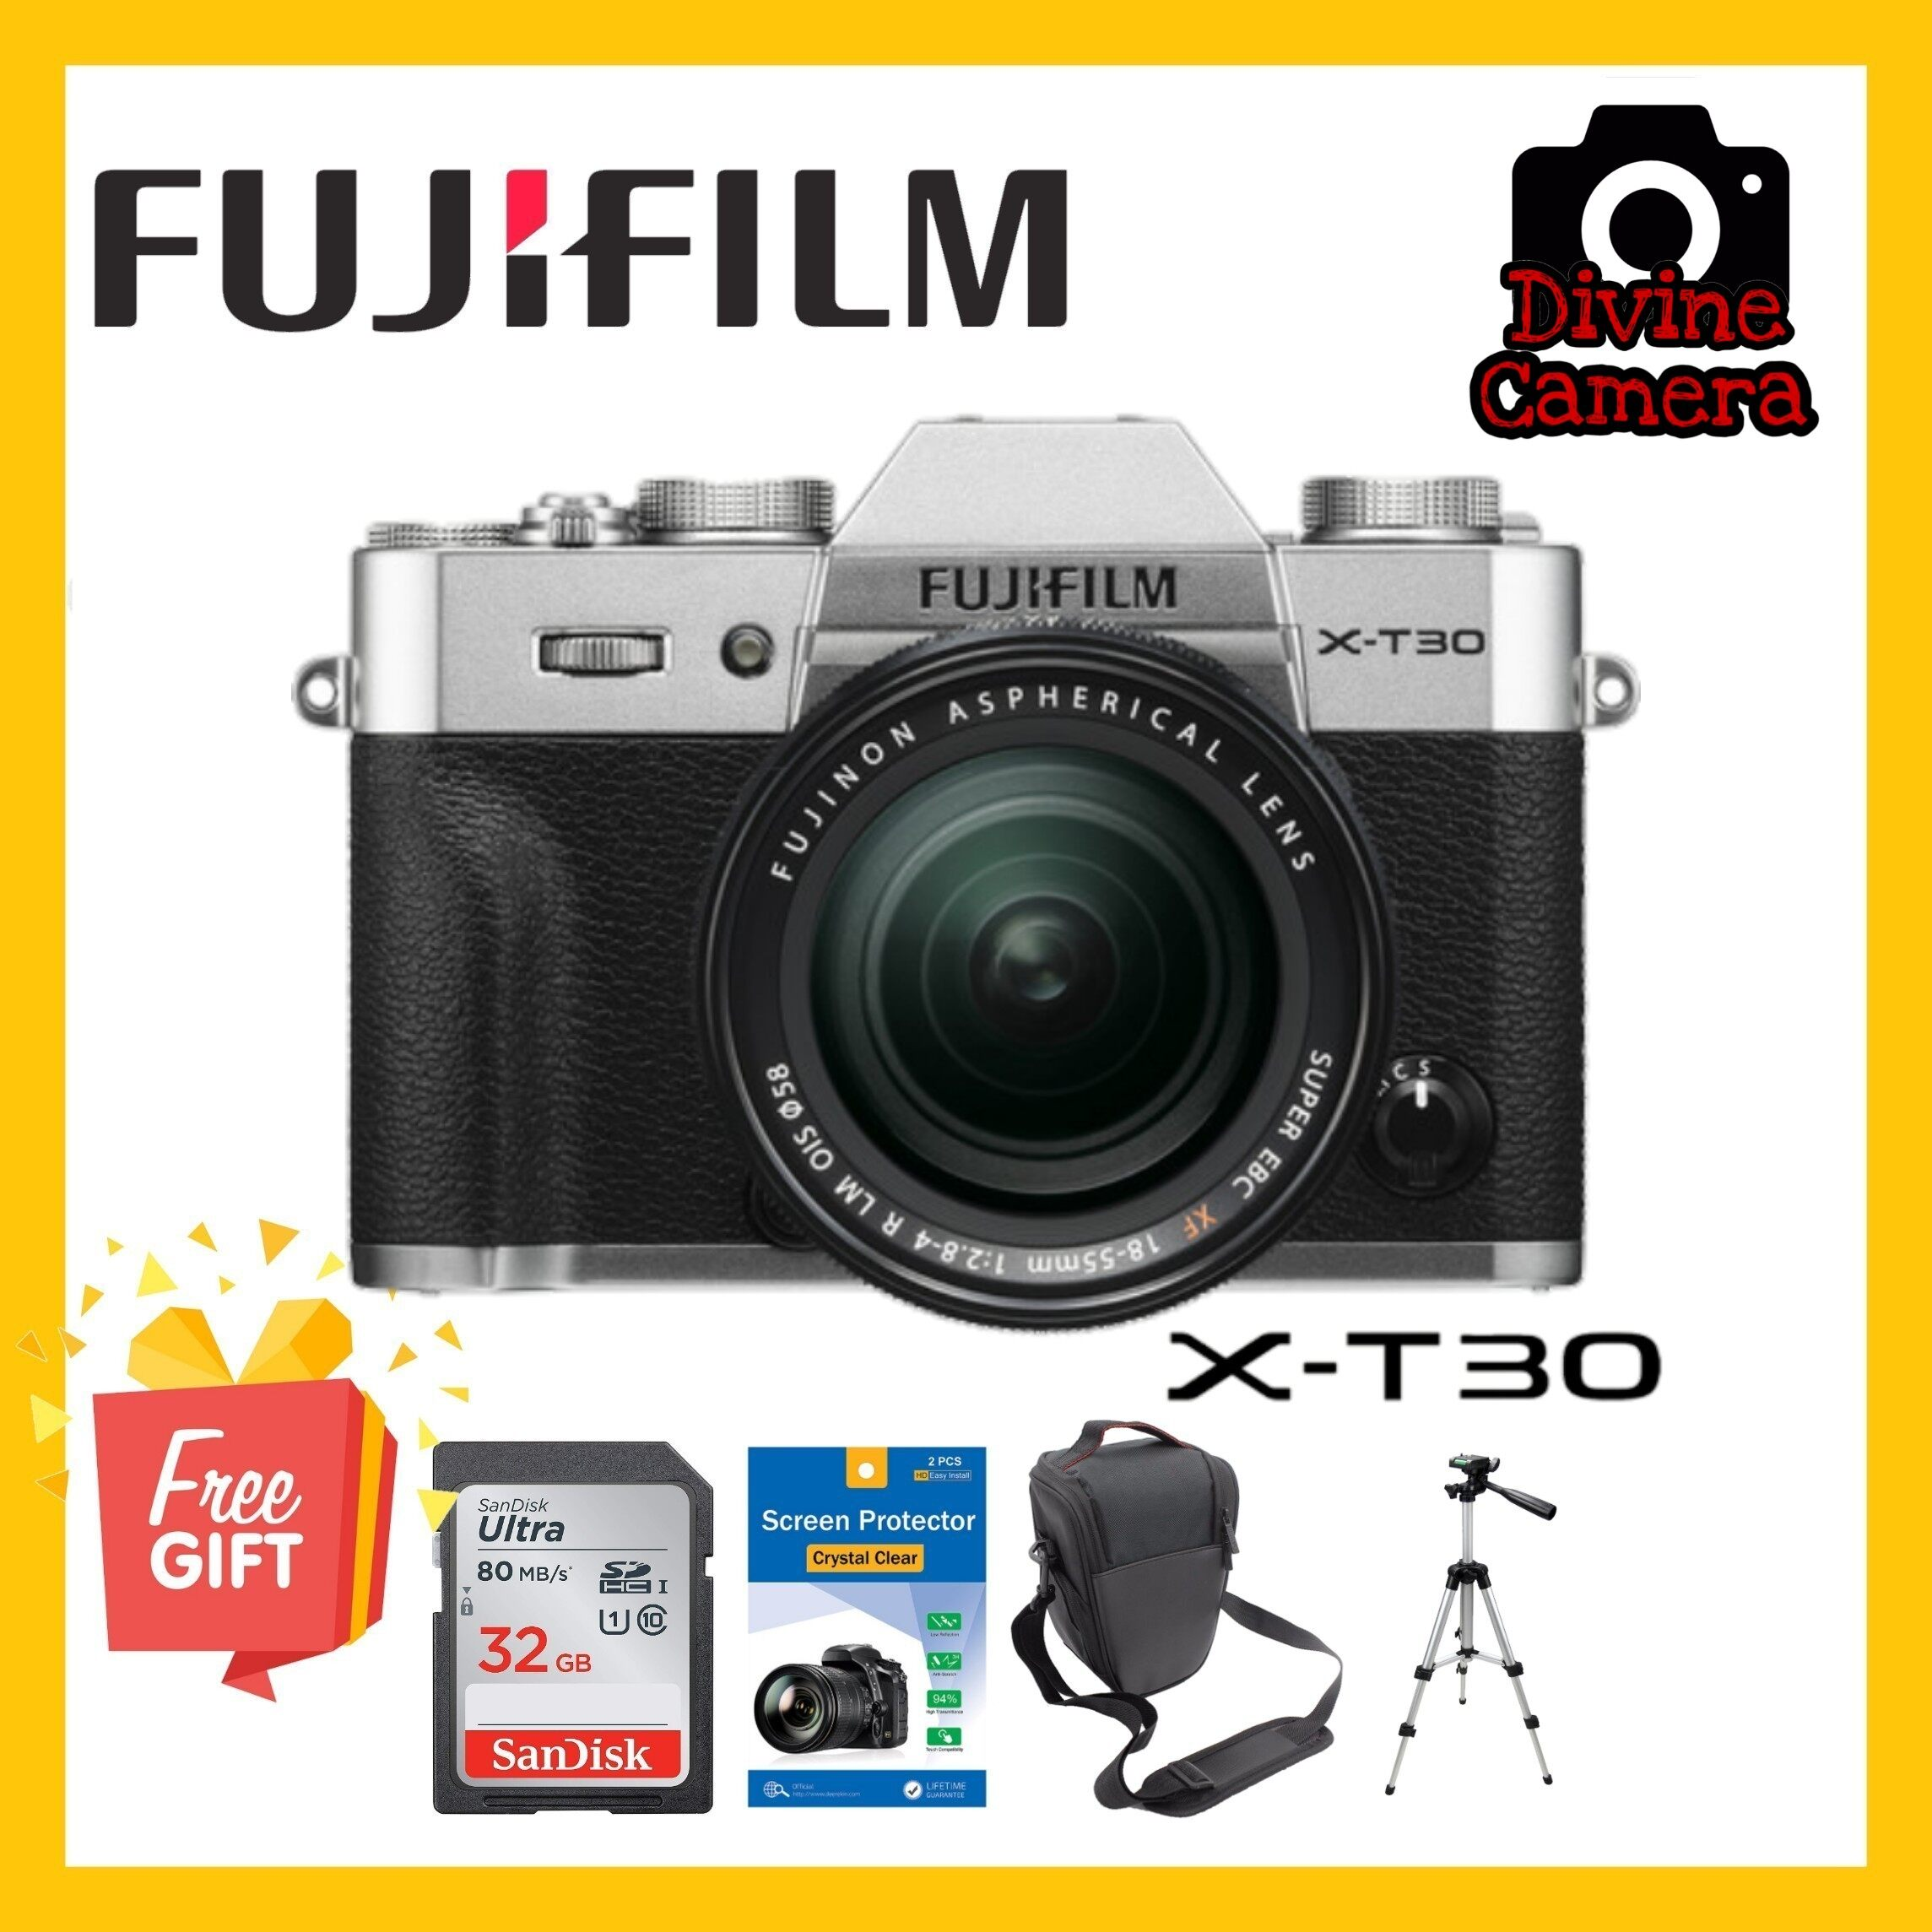 FUJIFILM X-T30 Mirrorless Digital Camera with 18-55mm Lens and Accessories Kit